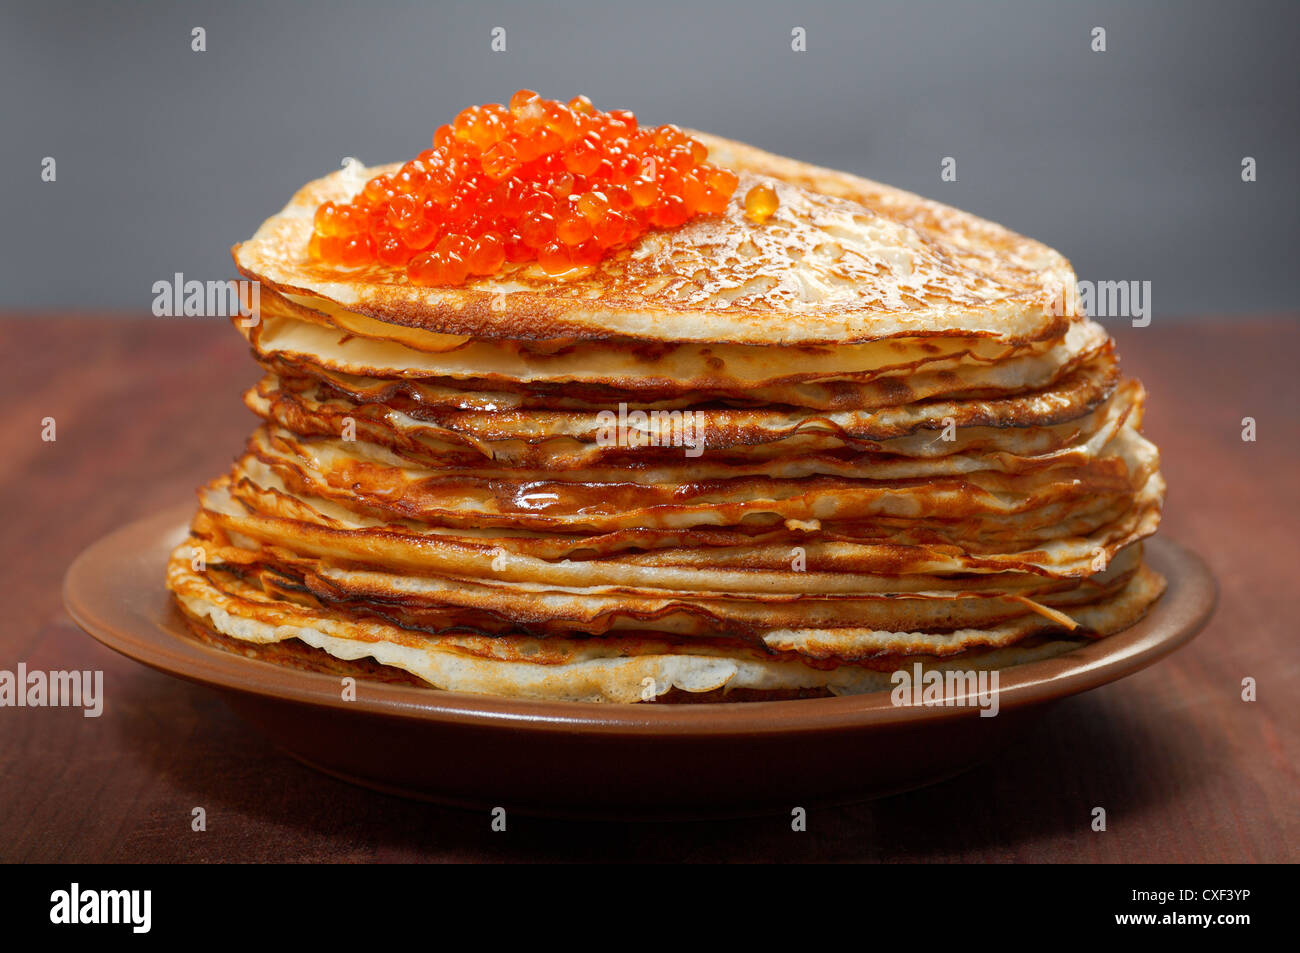 Russian pancakes  with red caviar - Stock Image